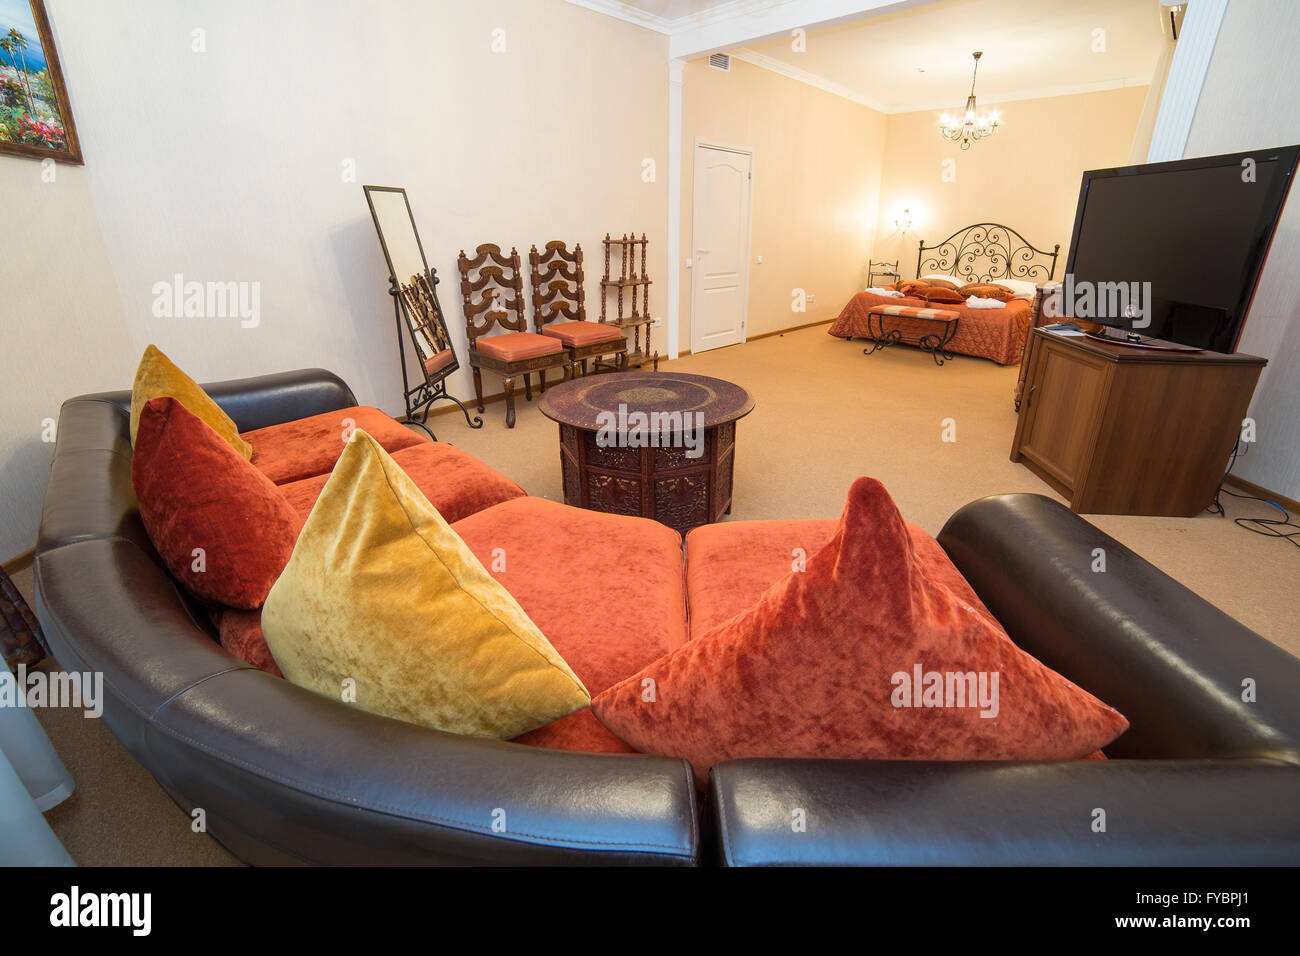 Apartment Interior In Turkish Style With Sofa, Pillows And Wooden Art  Carved Small Table